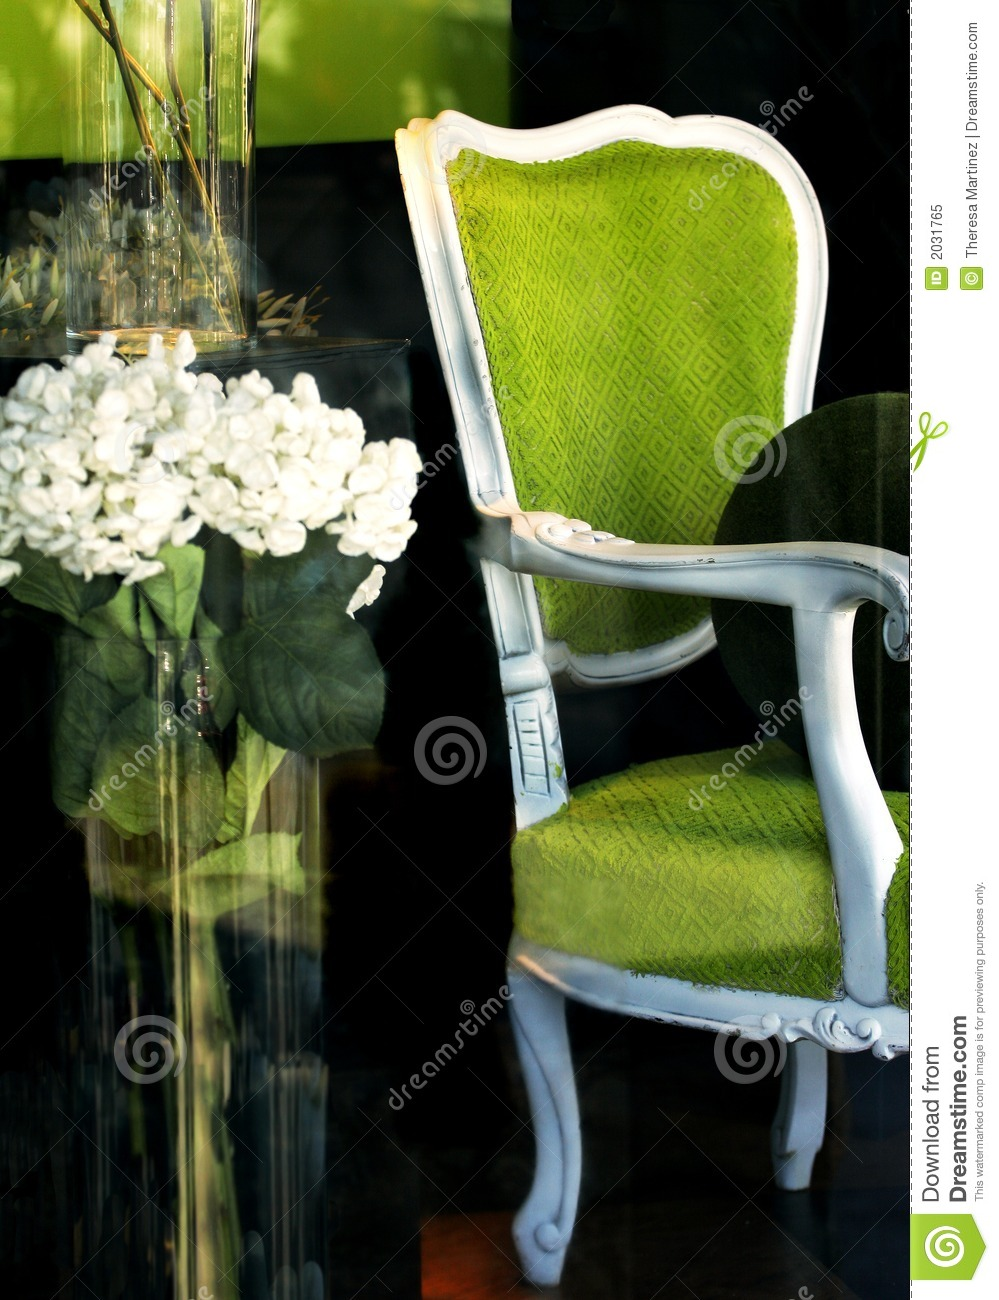 Green Chair in Store Window